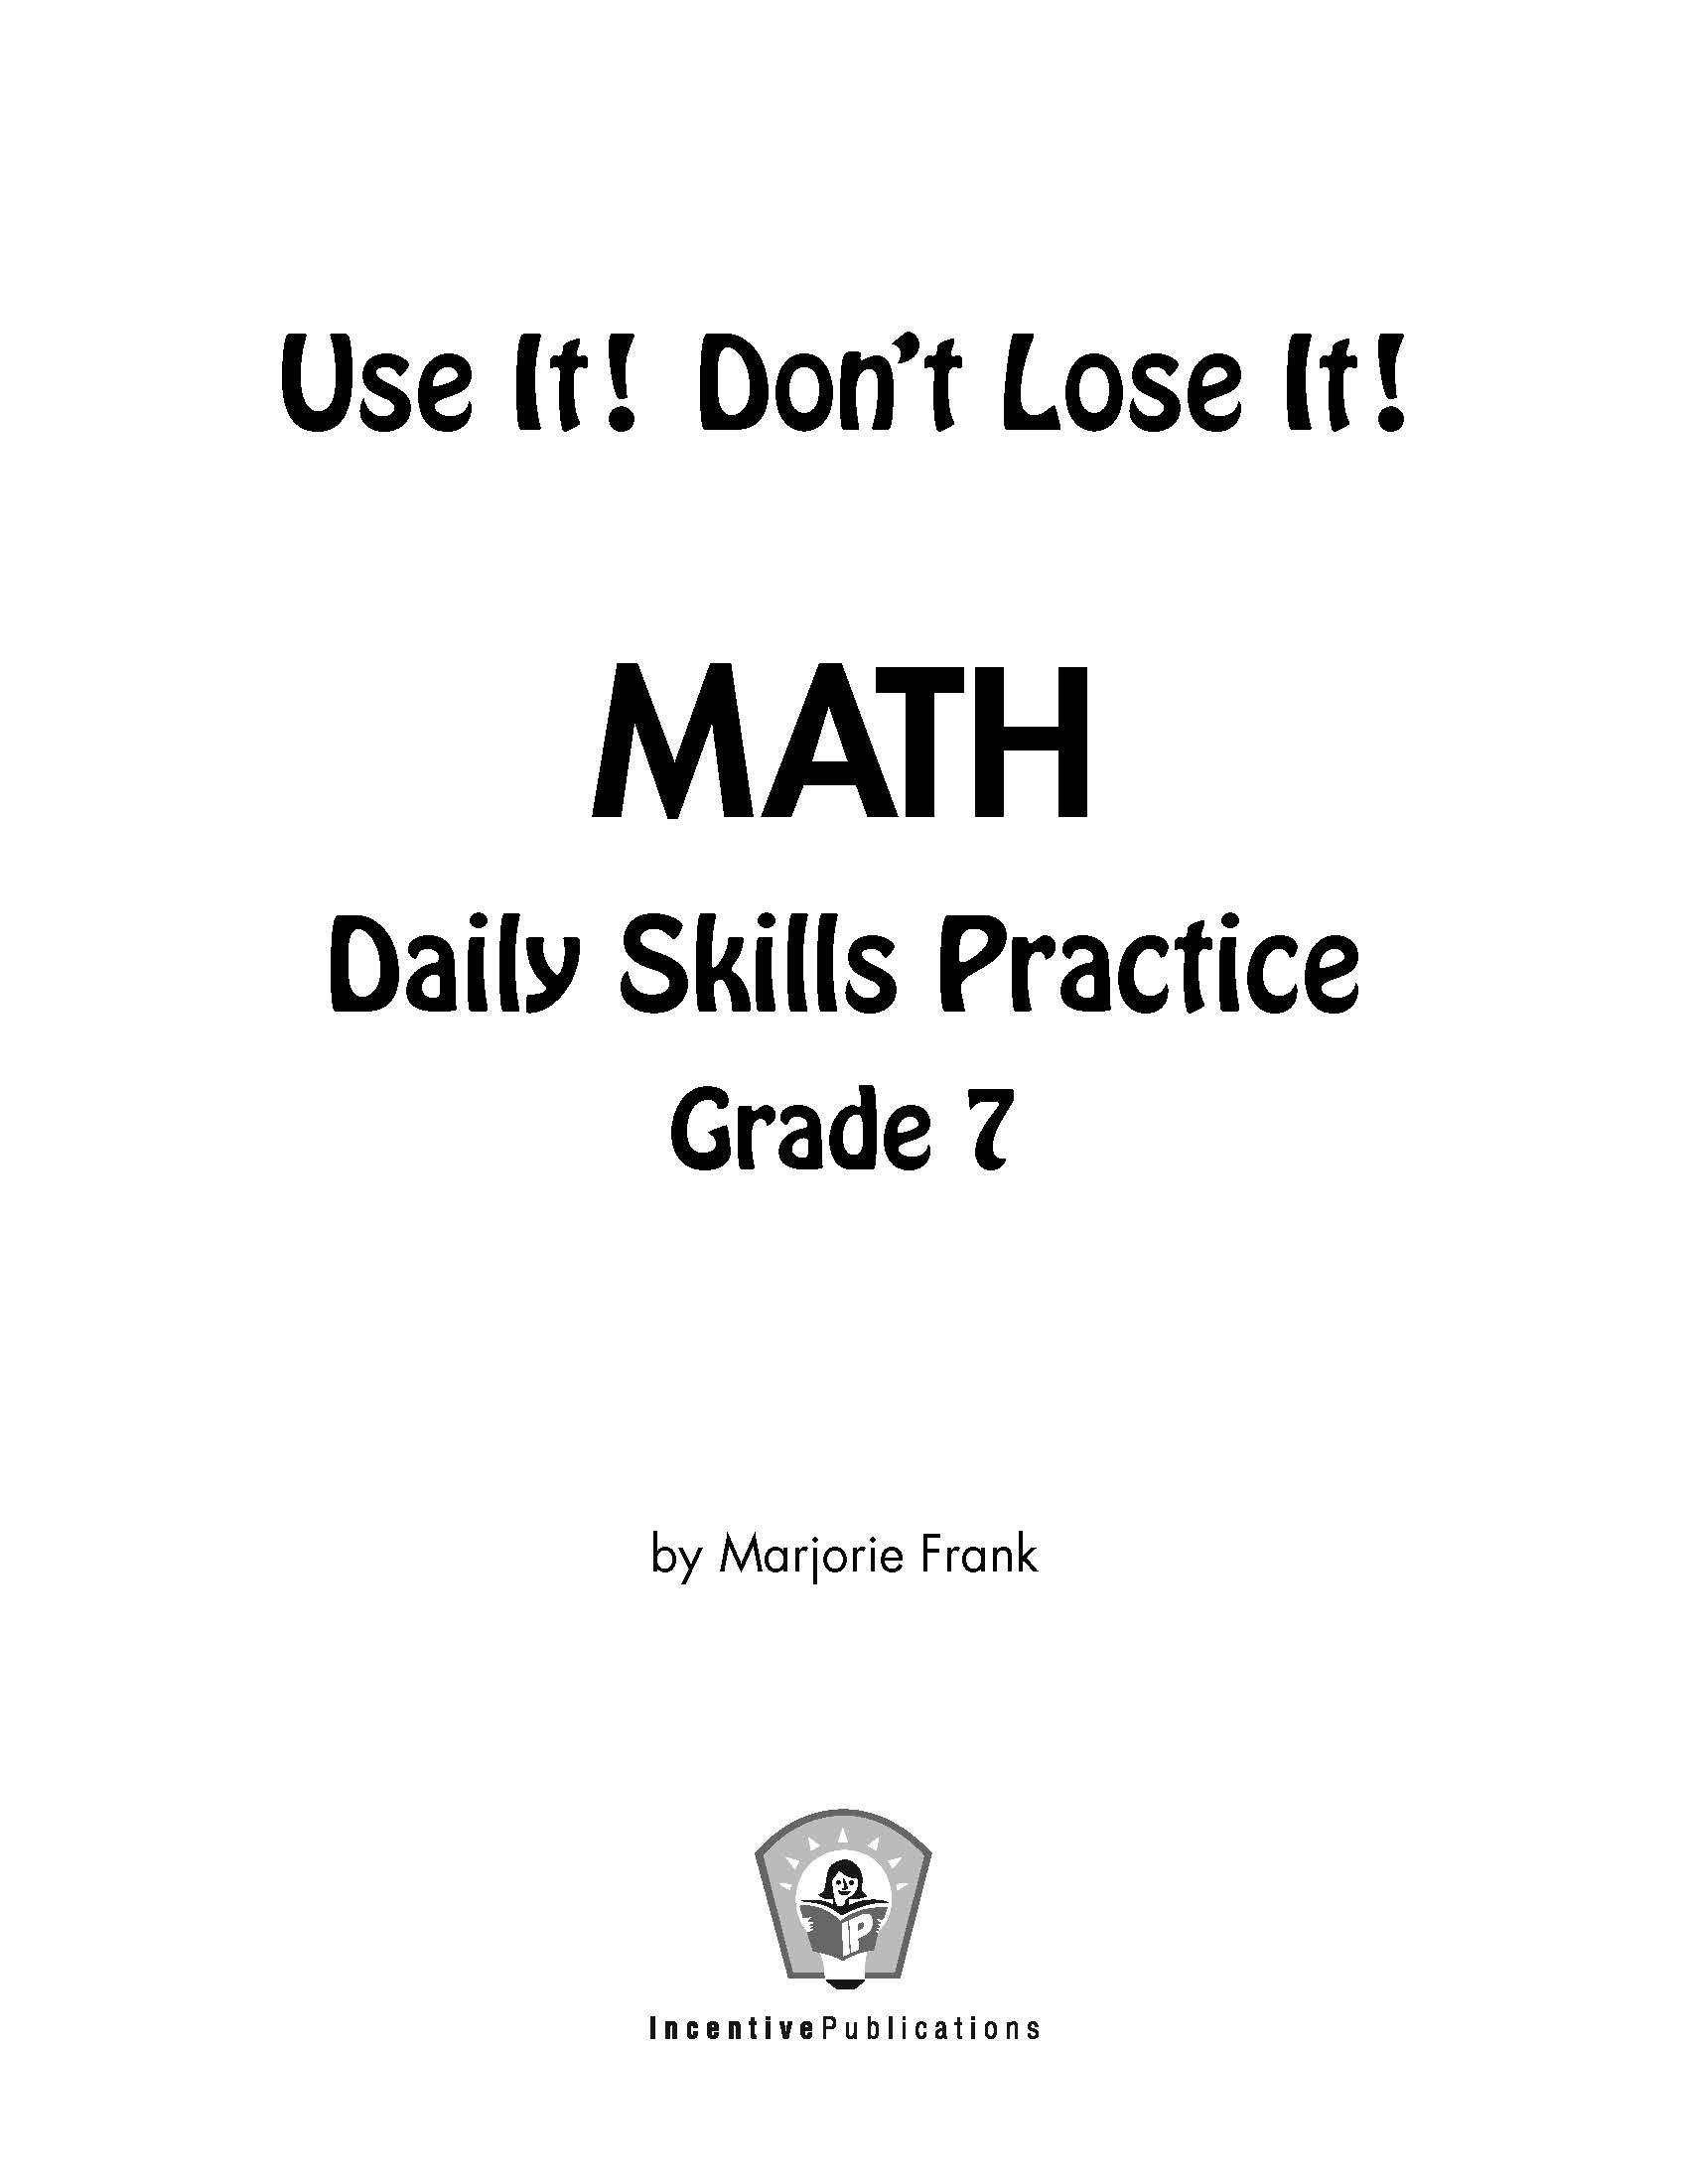 Math Quizzes 5th Grade order of operations worksheets star test – Daily Math Practice Worksheets